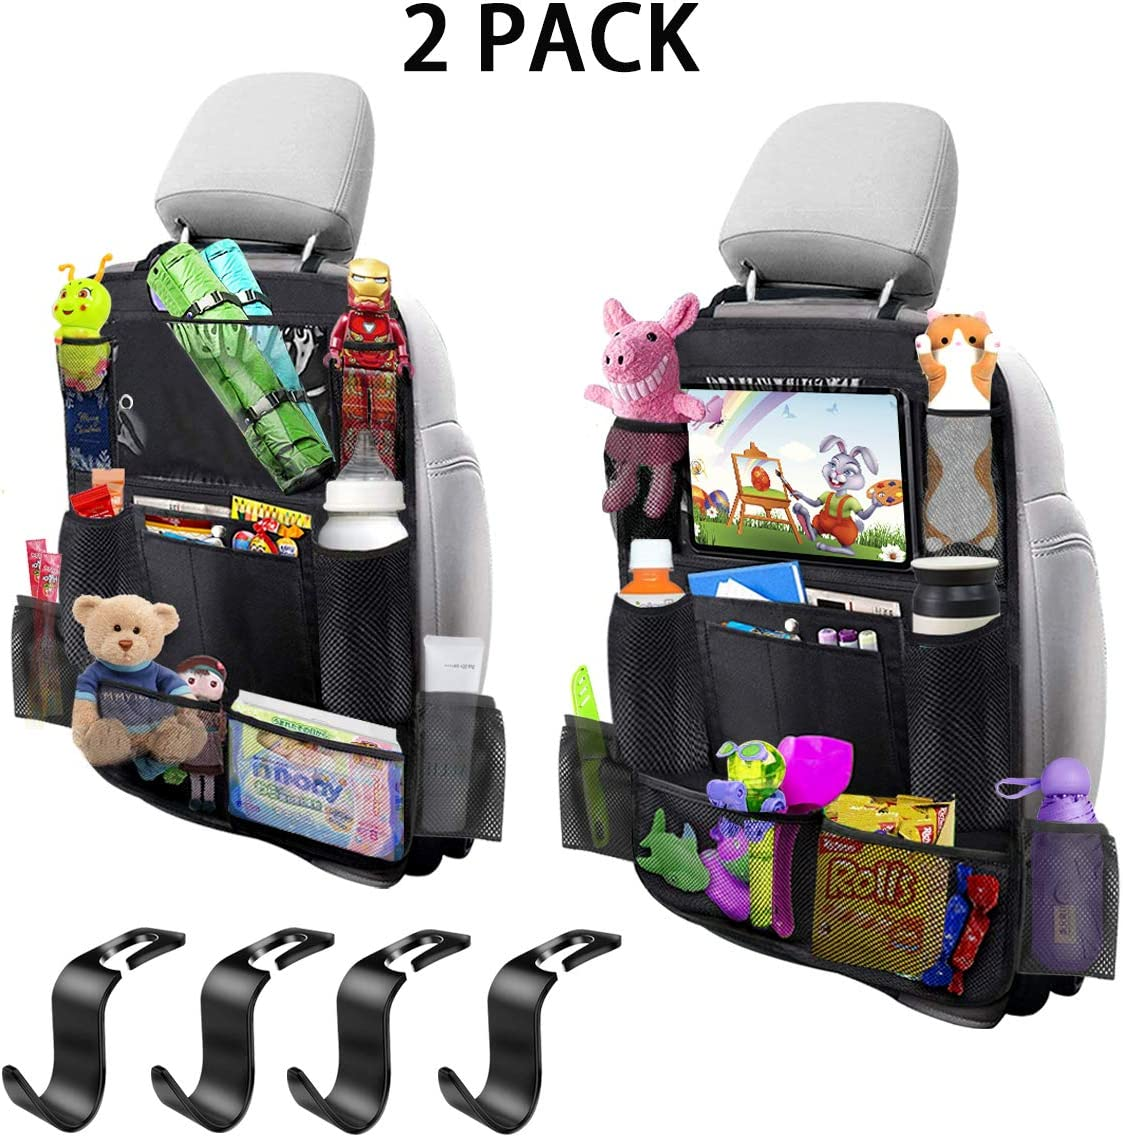 "MIBOTE-UK Car Backseat Organizer 2 Pack 11 Storage Pockets Kick Mats Organiser with 10"" Touch Screen Tablet Holder Car Seat Back Protectors with 4 plastic hooks for Kids and Toddlers"